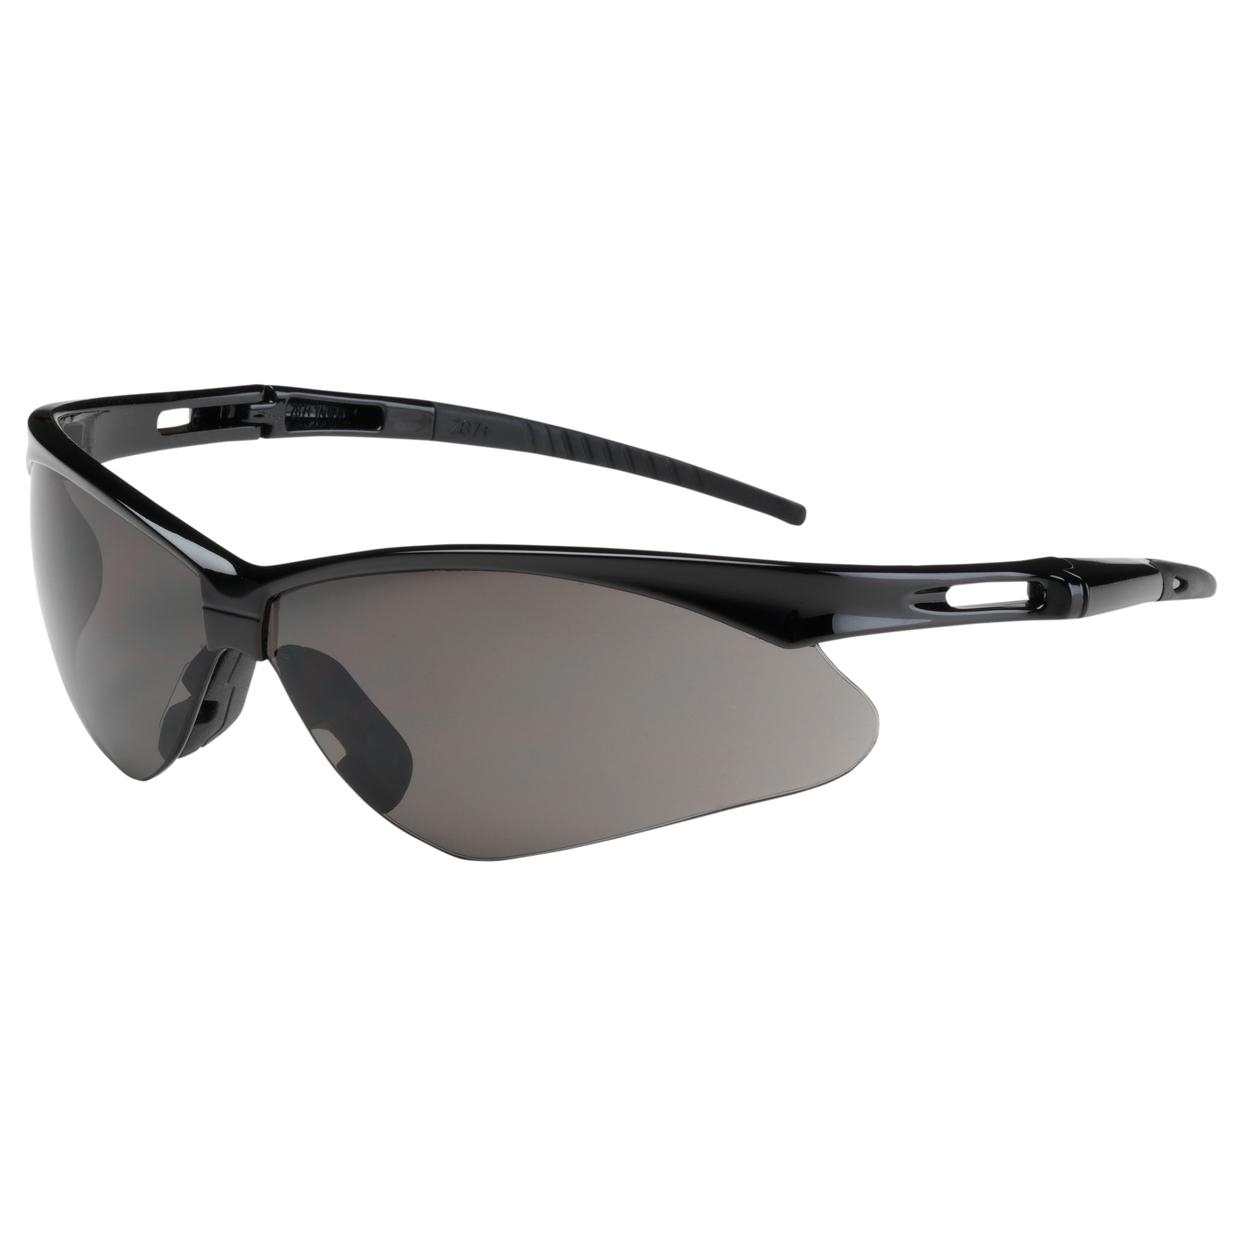 188e631be1 Bouton 250-AN-10112 Anser Safety Glasses - Black Frame - Gray Lens ...